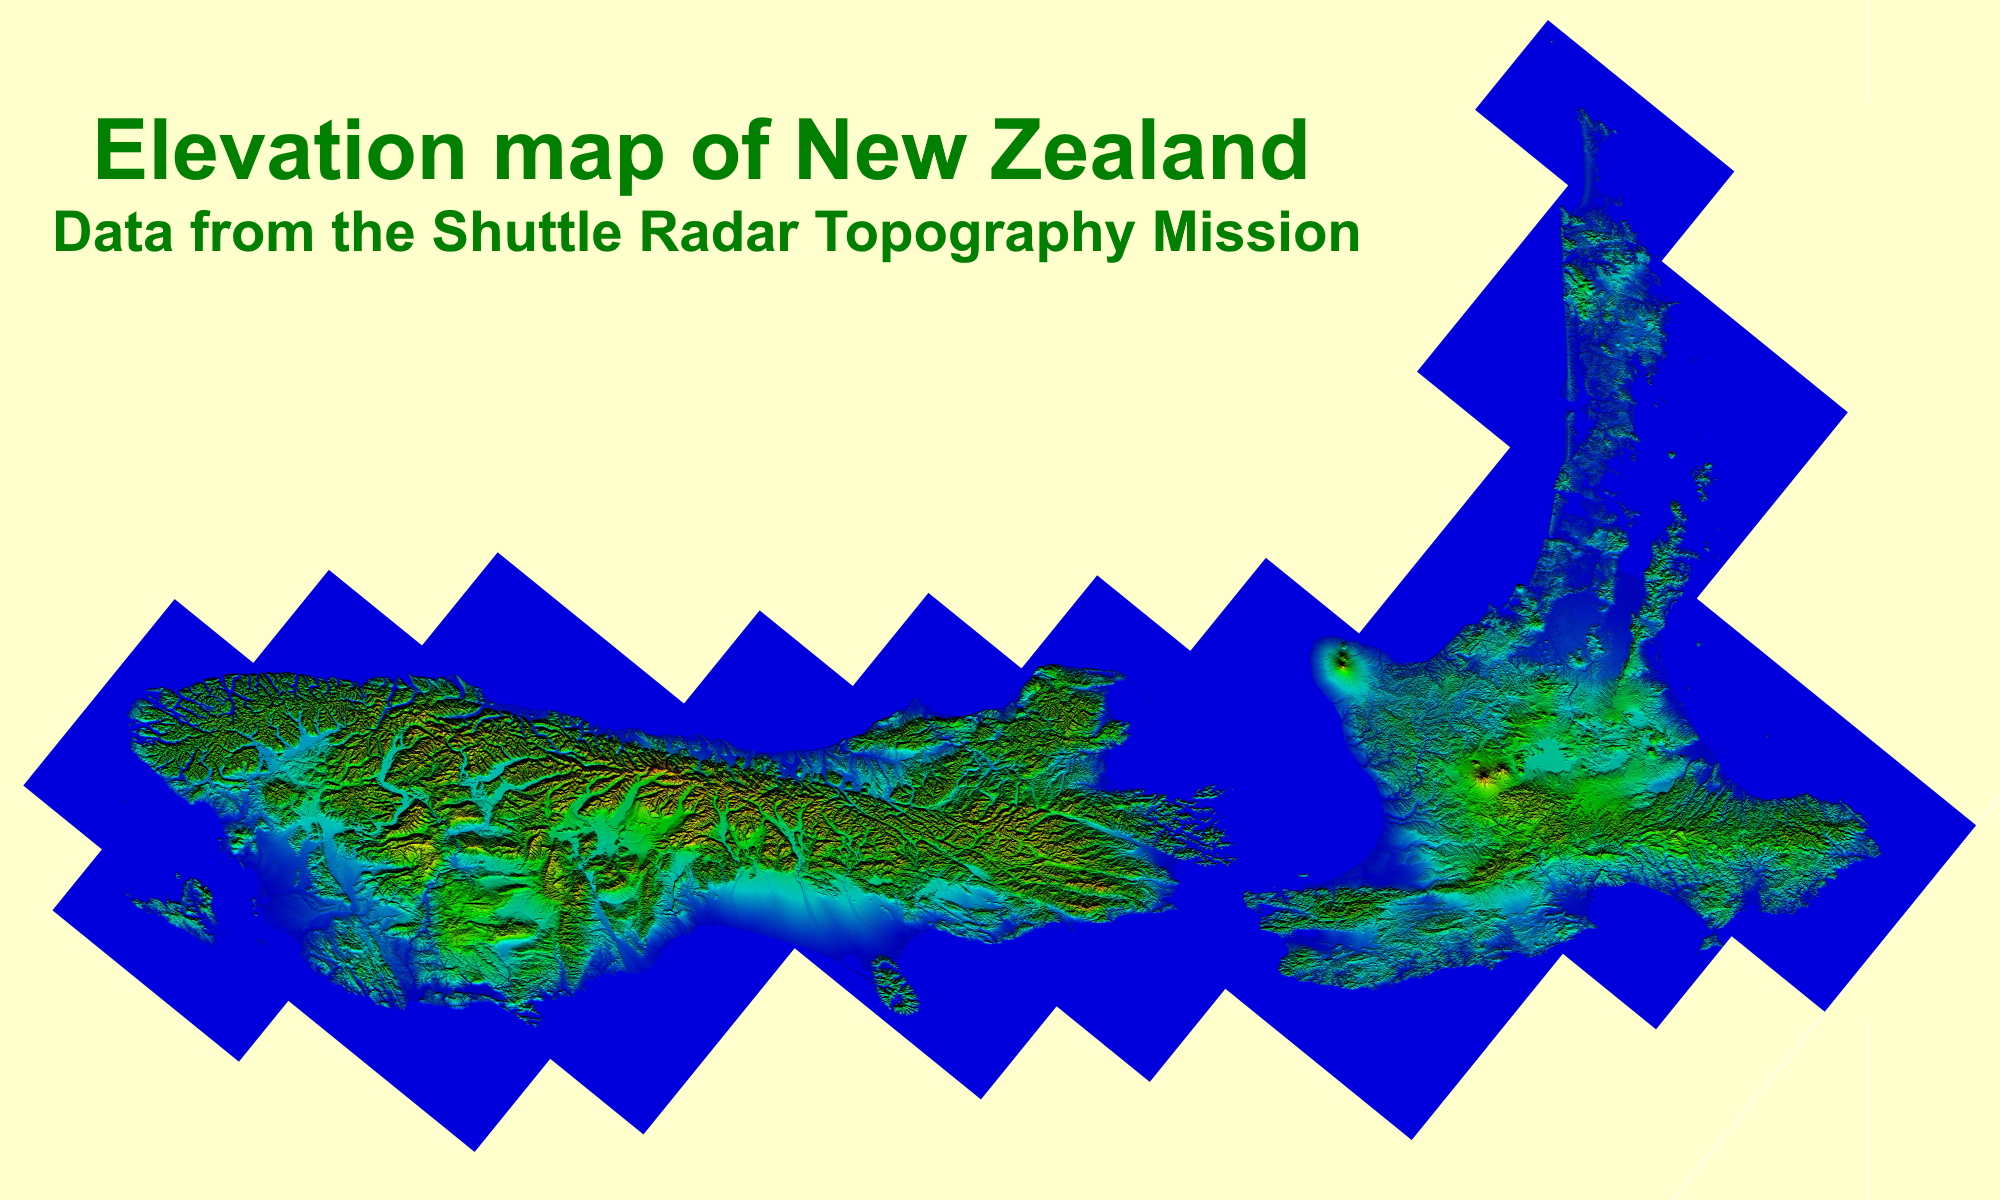 Featured image: Where is New Zealand's highest point?